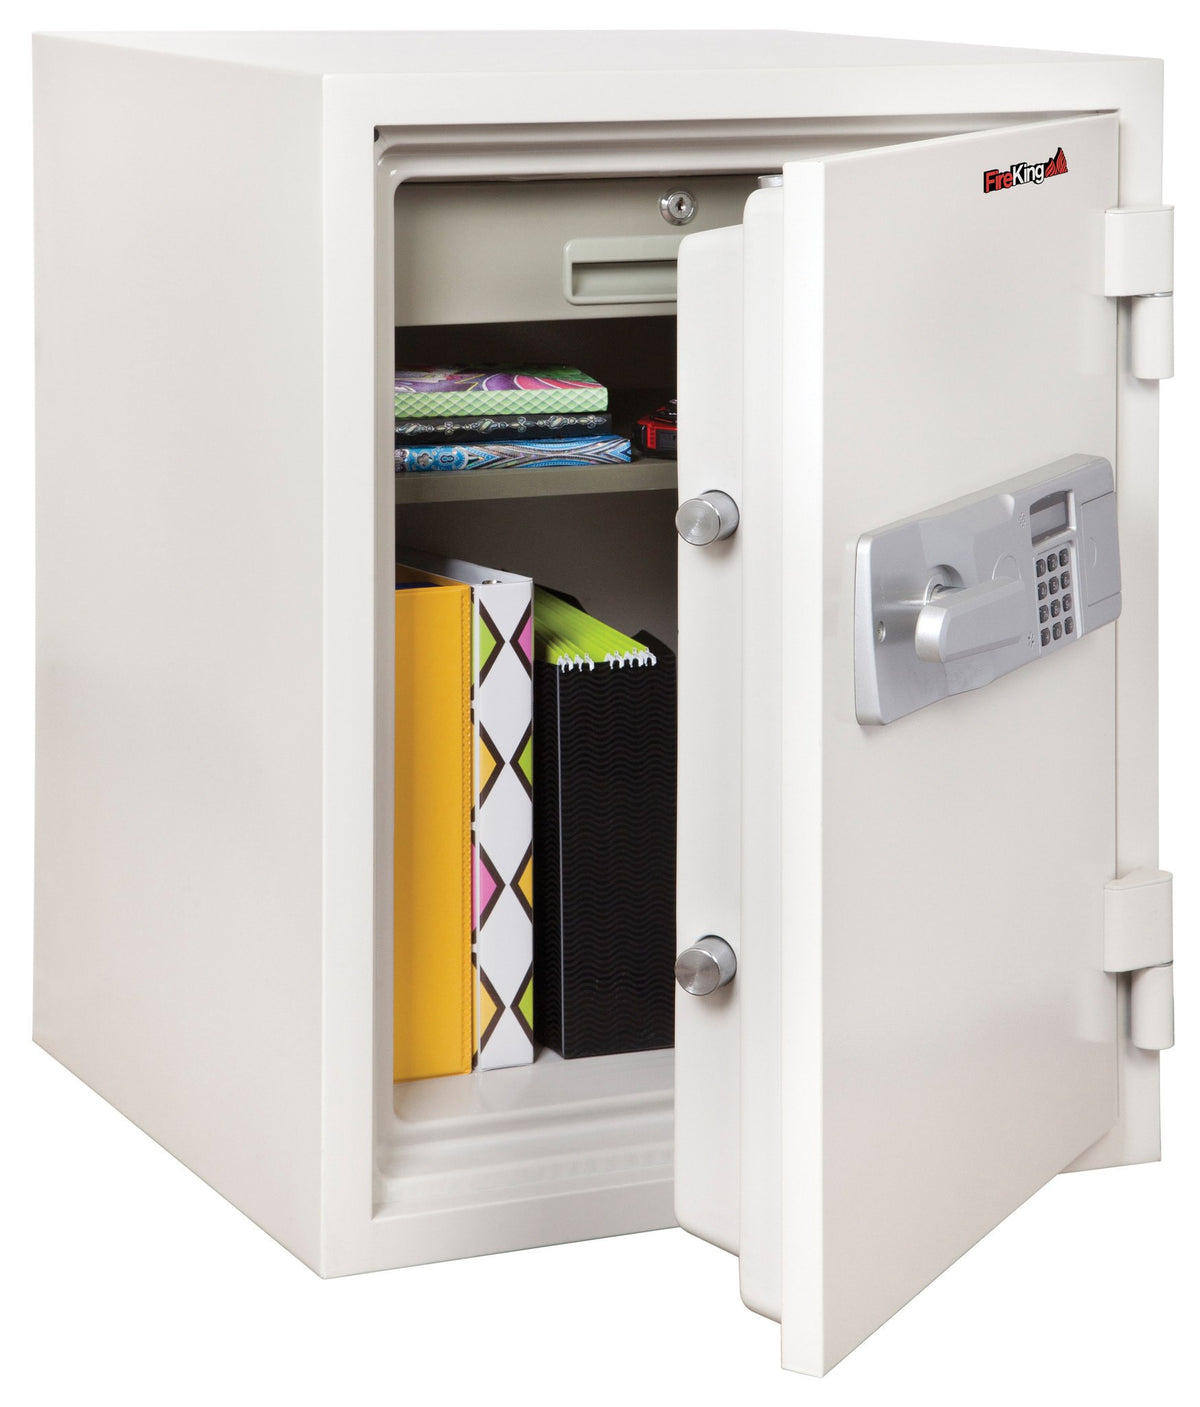 FireKing KF2115-2WHE 90 Minute Fire Safe